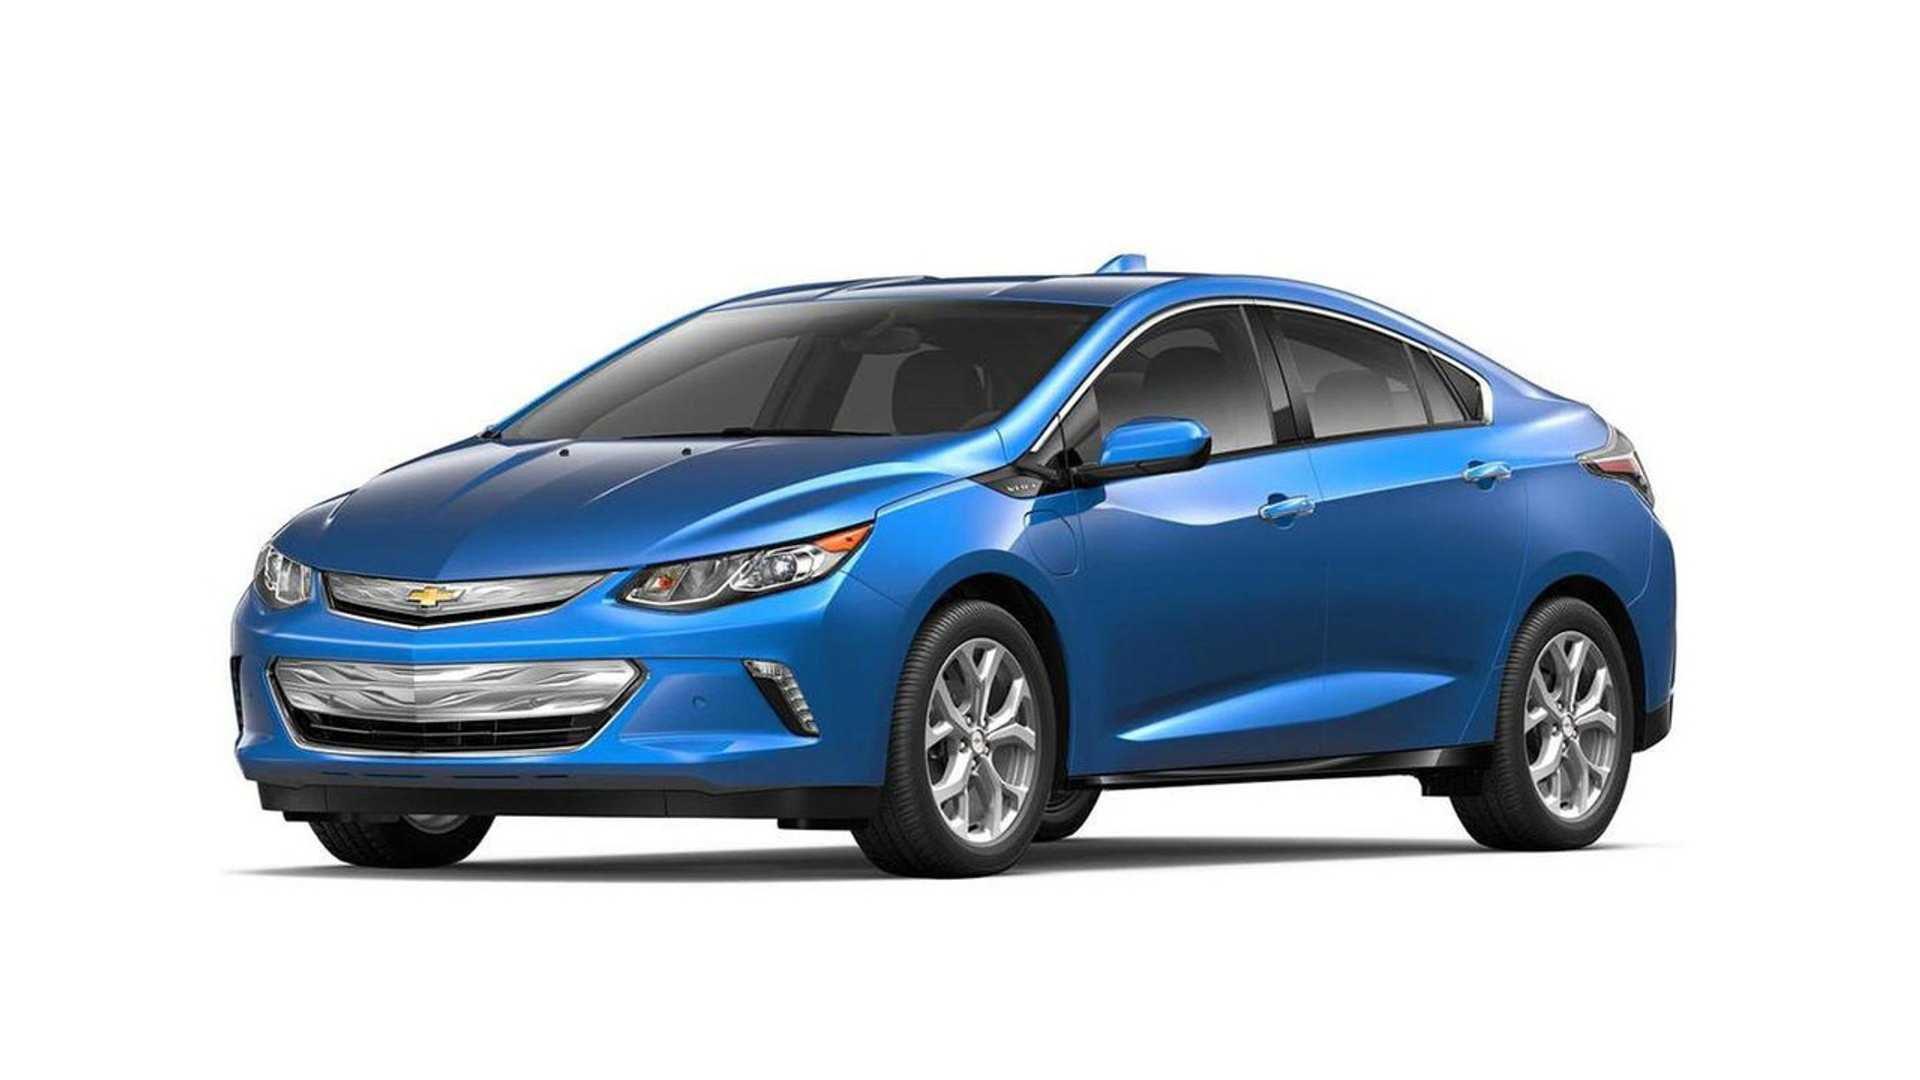 Rumor Again Surfaces Calling For End Of Chevrolet VoltIn 5